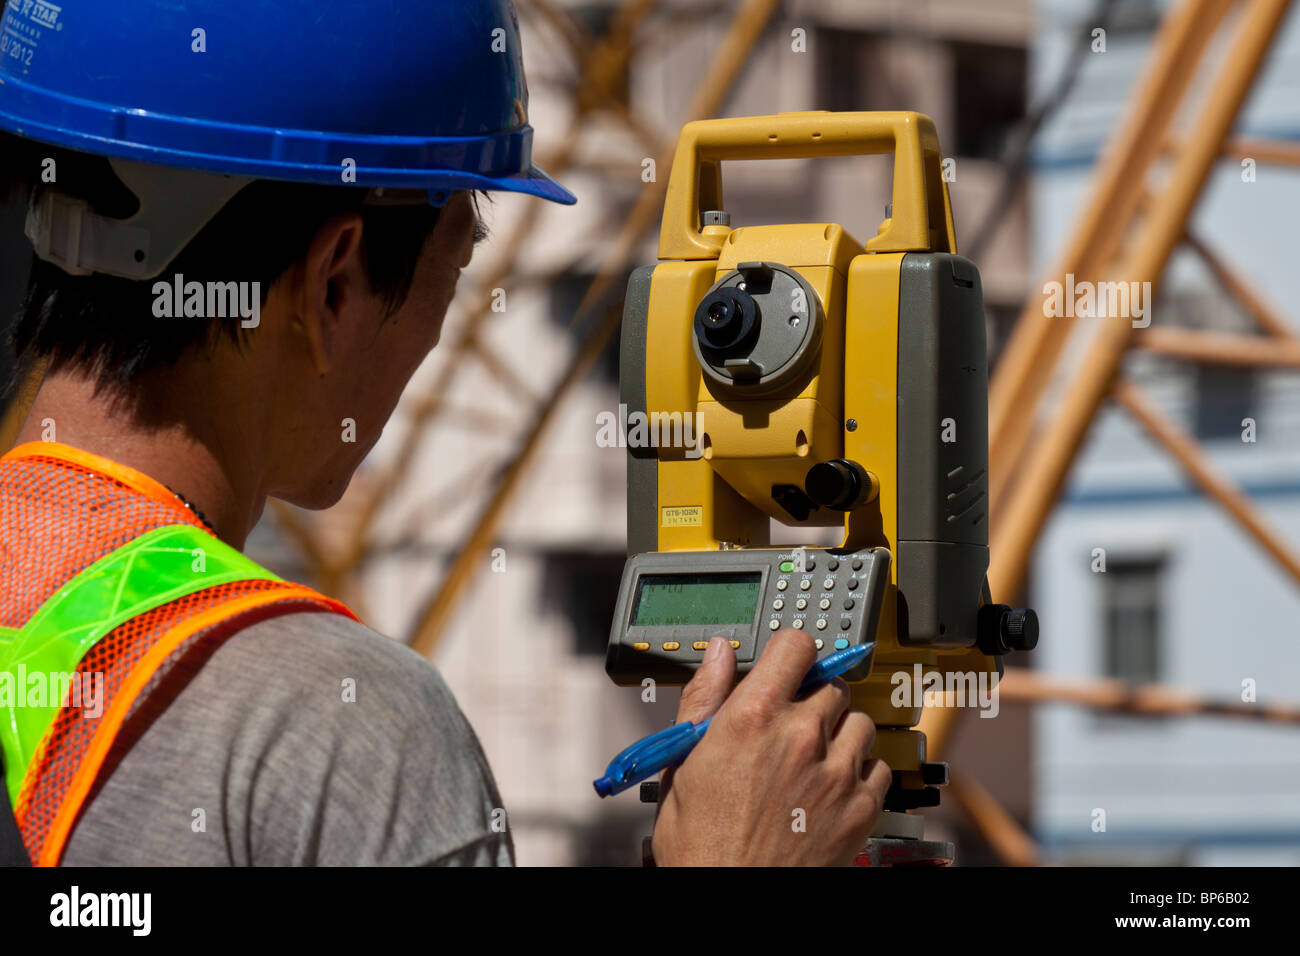 An engineer taking readings off a theodolite on a construction site in Hong Kong. - Stock Image